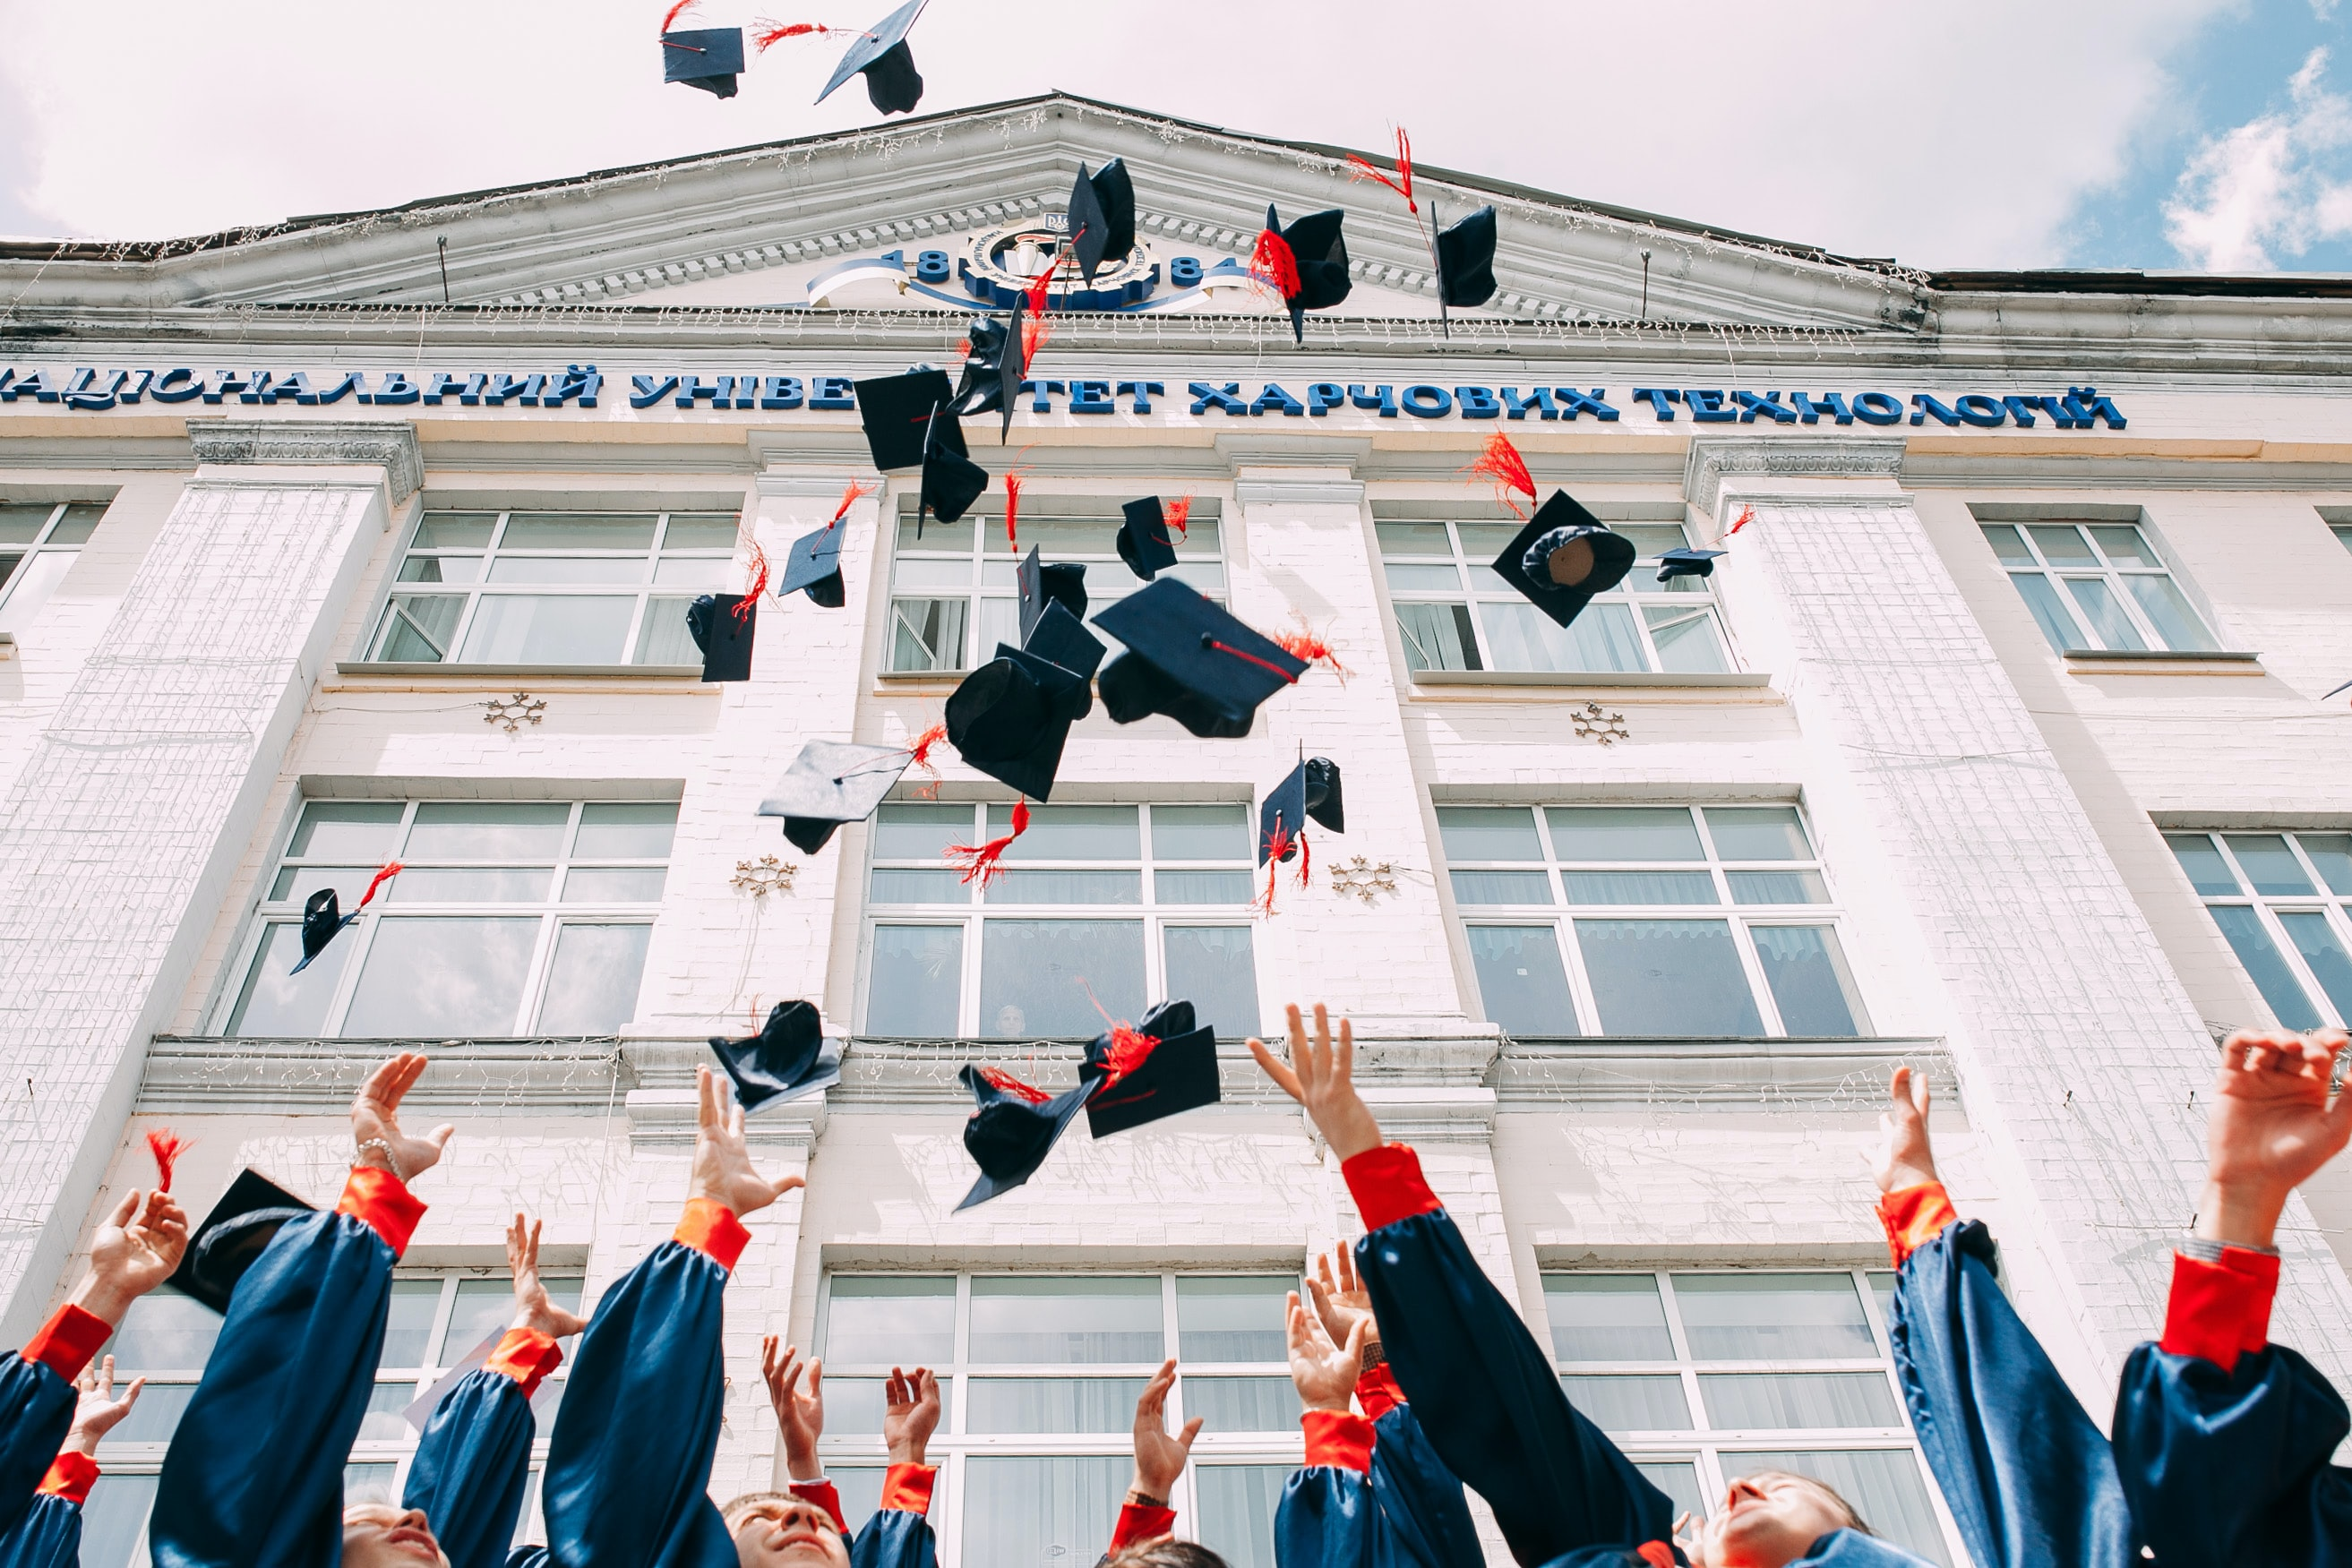 Students throwing their graduation caps in the air in front of a university building